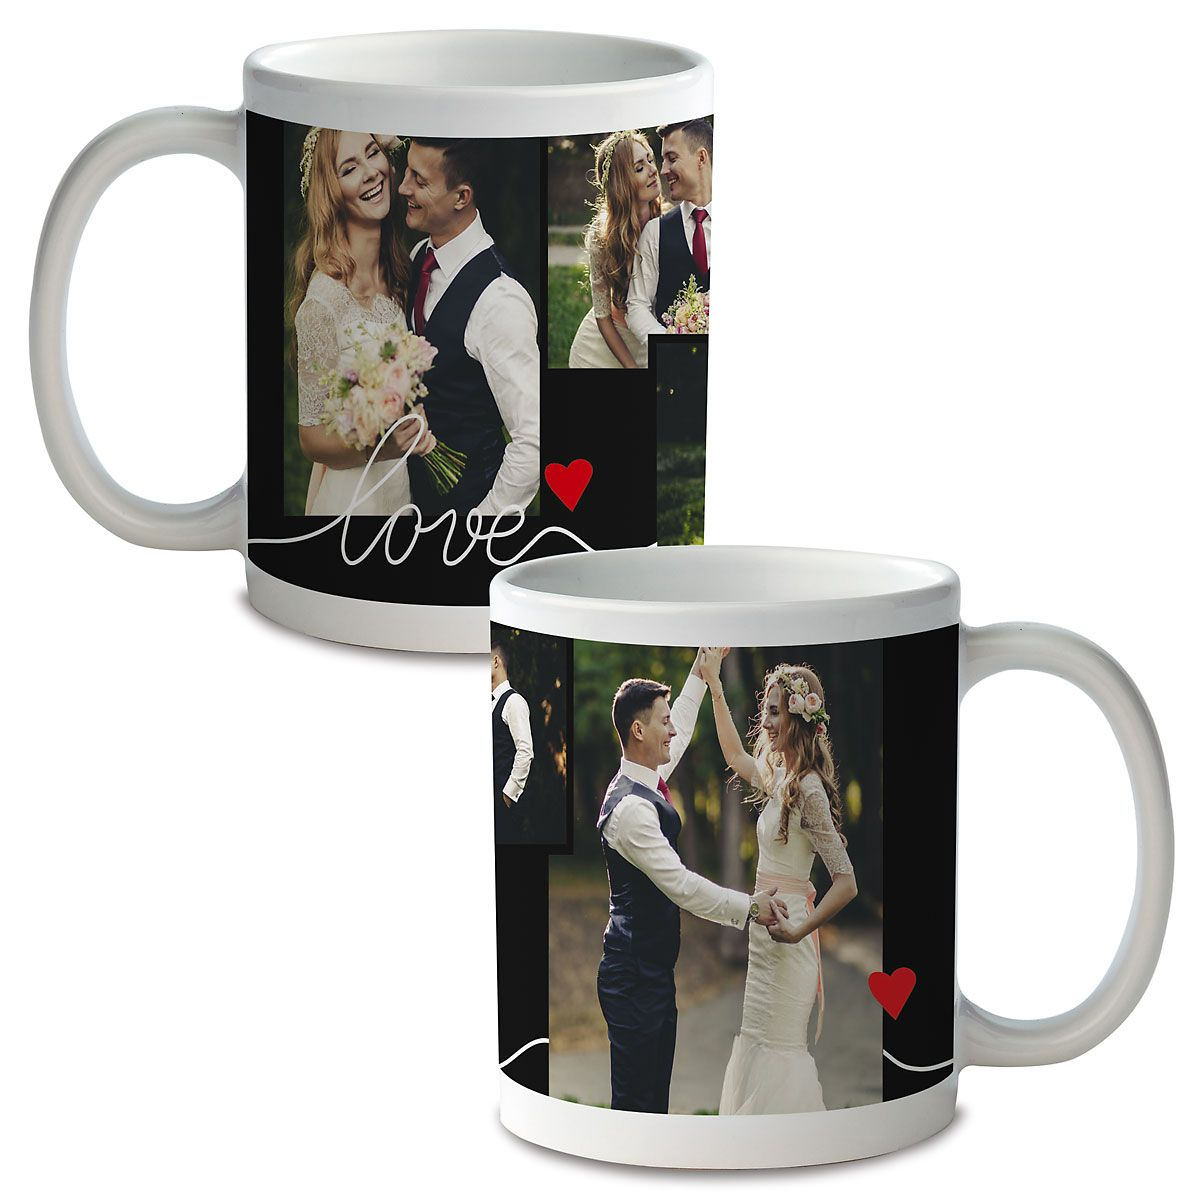 Love Custom Ceramic Photo Mug